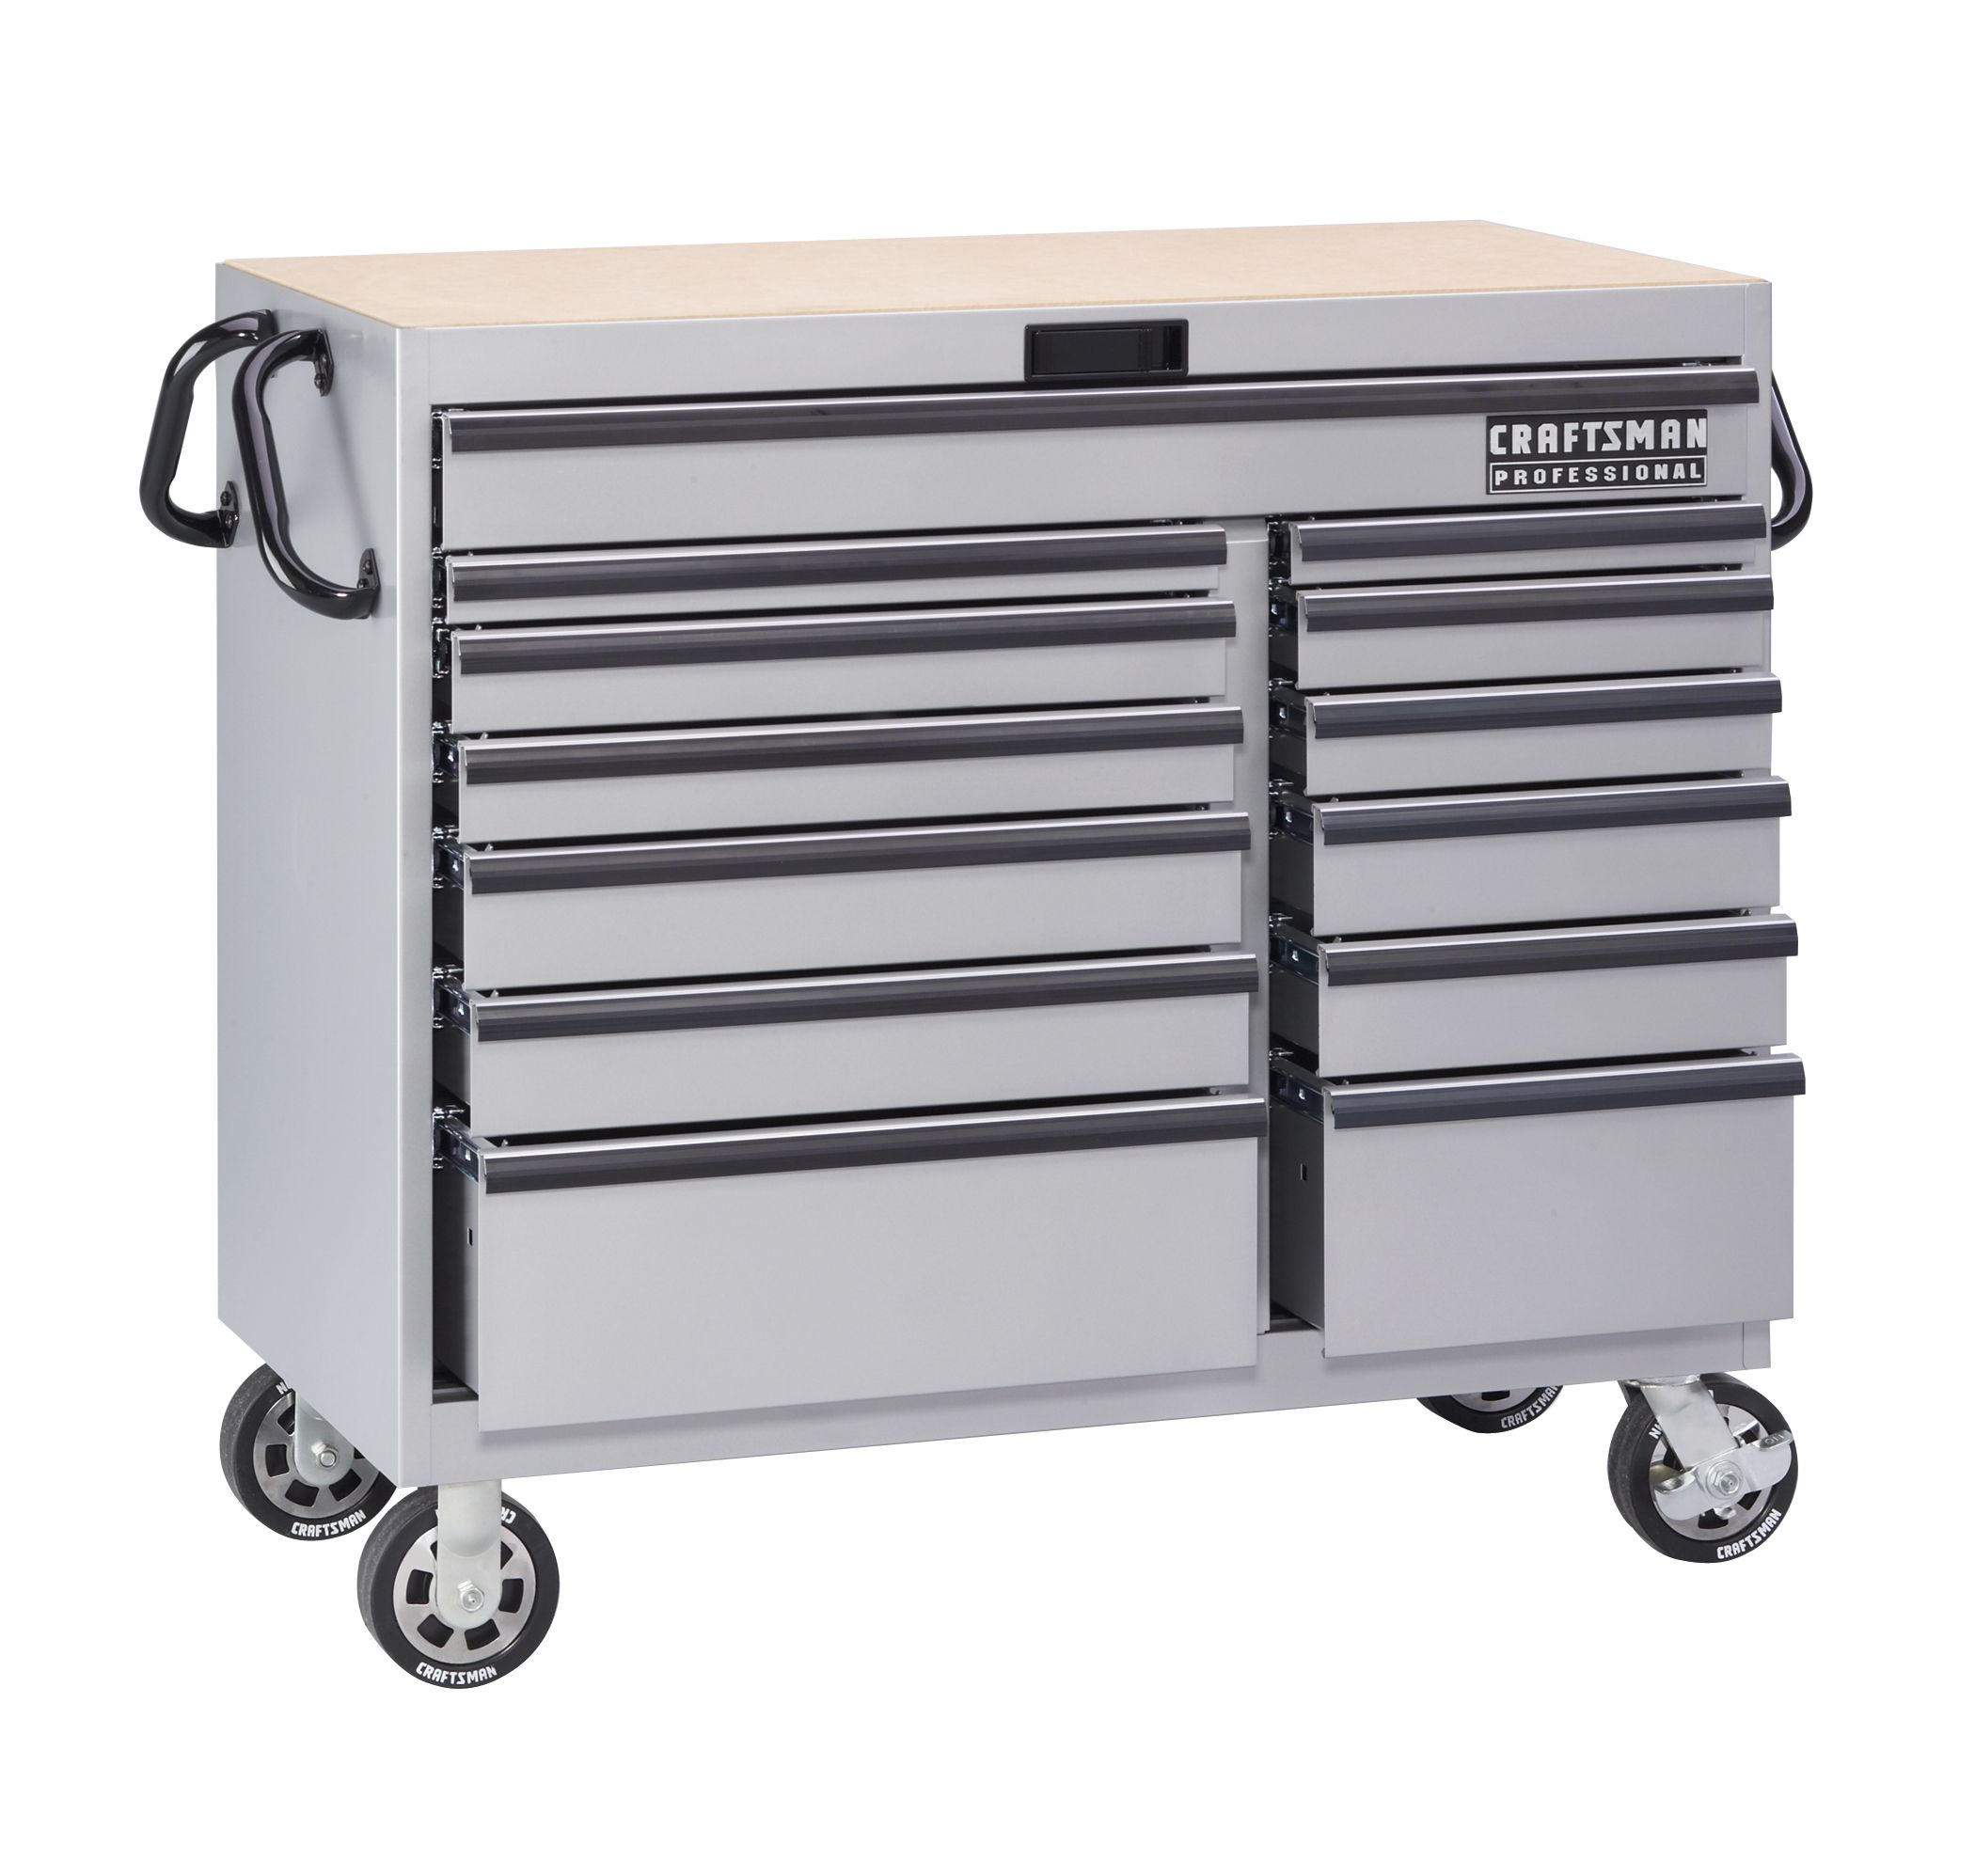 Craftsman Professional 46 In. 13-drawer Mobile Tool Cart